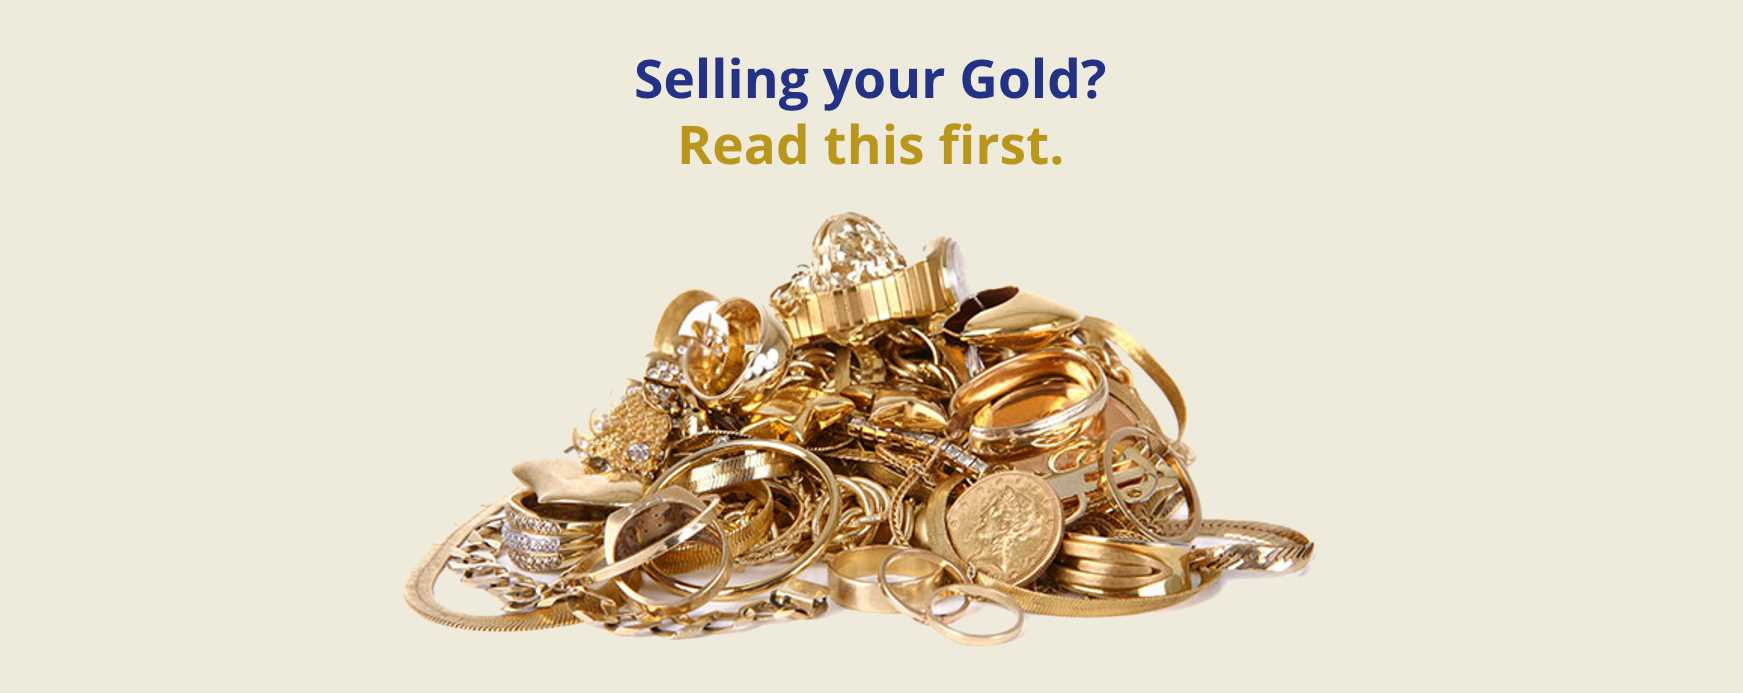 How to Sell Your Gold